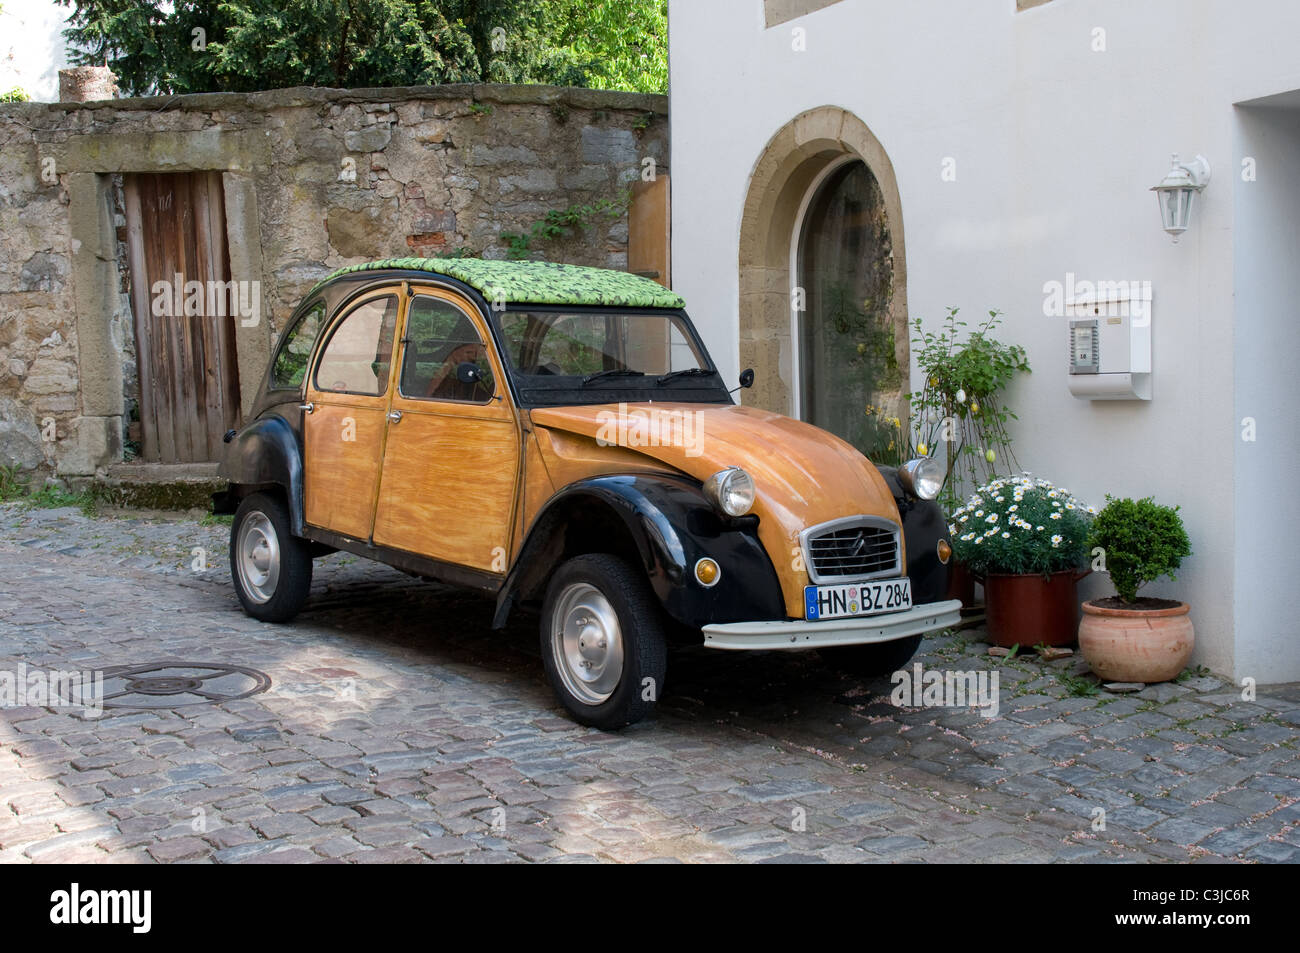 2cv roof citroen 2cv 2cv6 hood roof brand new for sale a citroen 2cv with wood effect panels and green leaf pattern roof park in a street in germany vanachro Choice Image